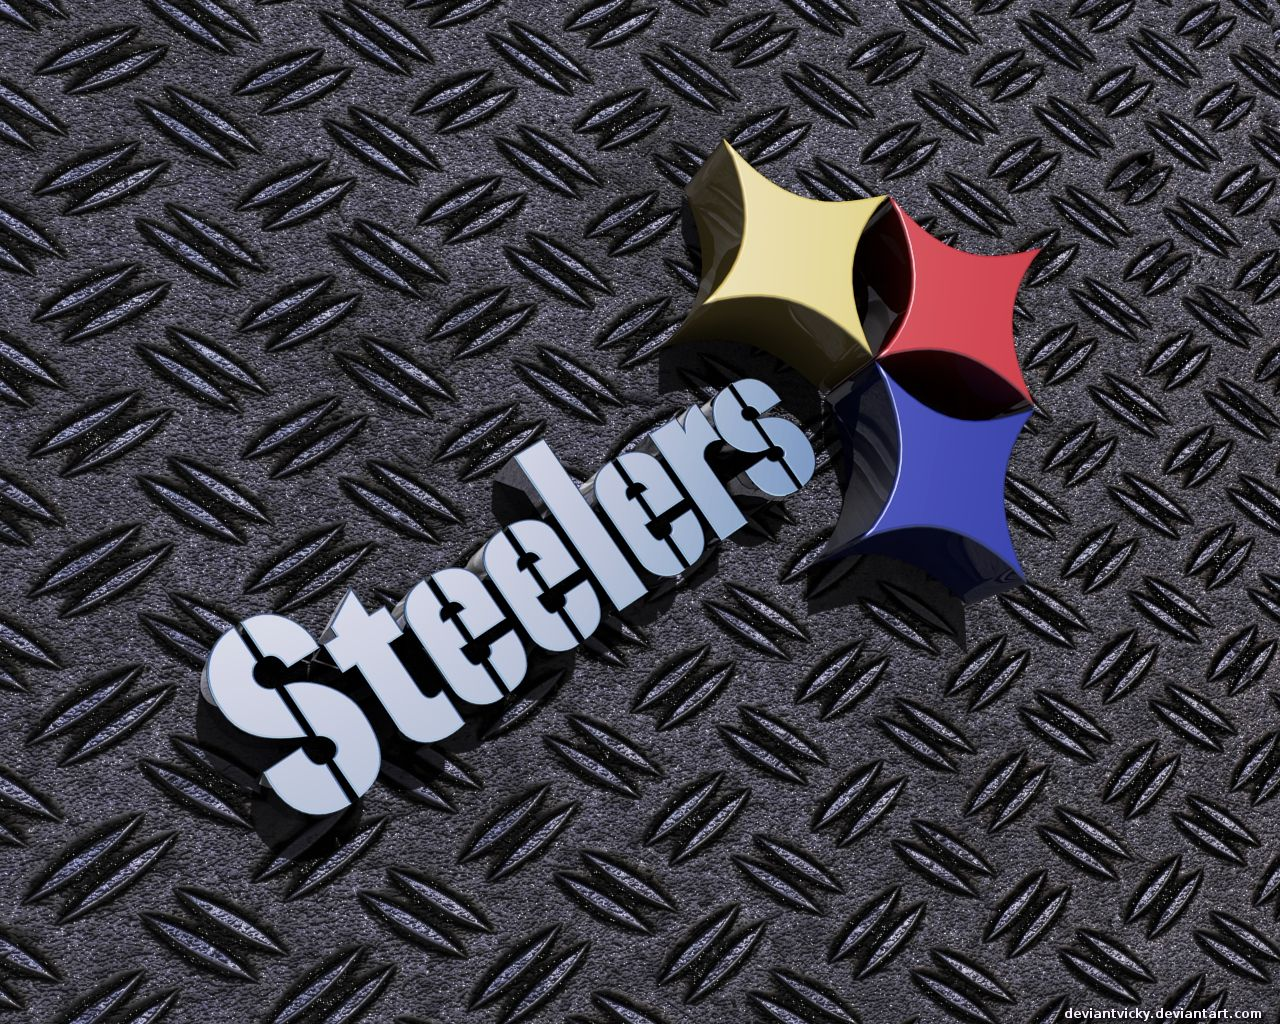 Steelers 3d wallpaper steelers 3d by deviantvicky 1280 x steelers wallpaper by on deviantart amipublicfo Image collections